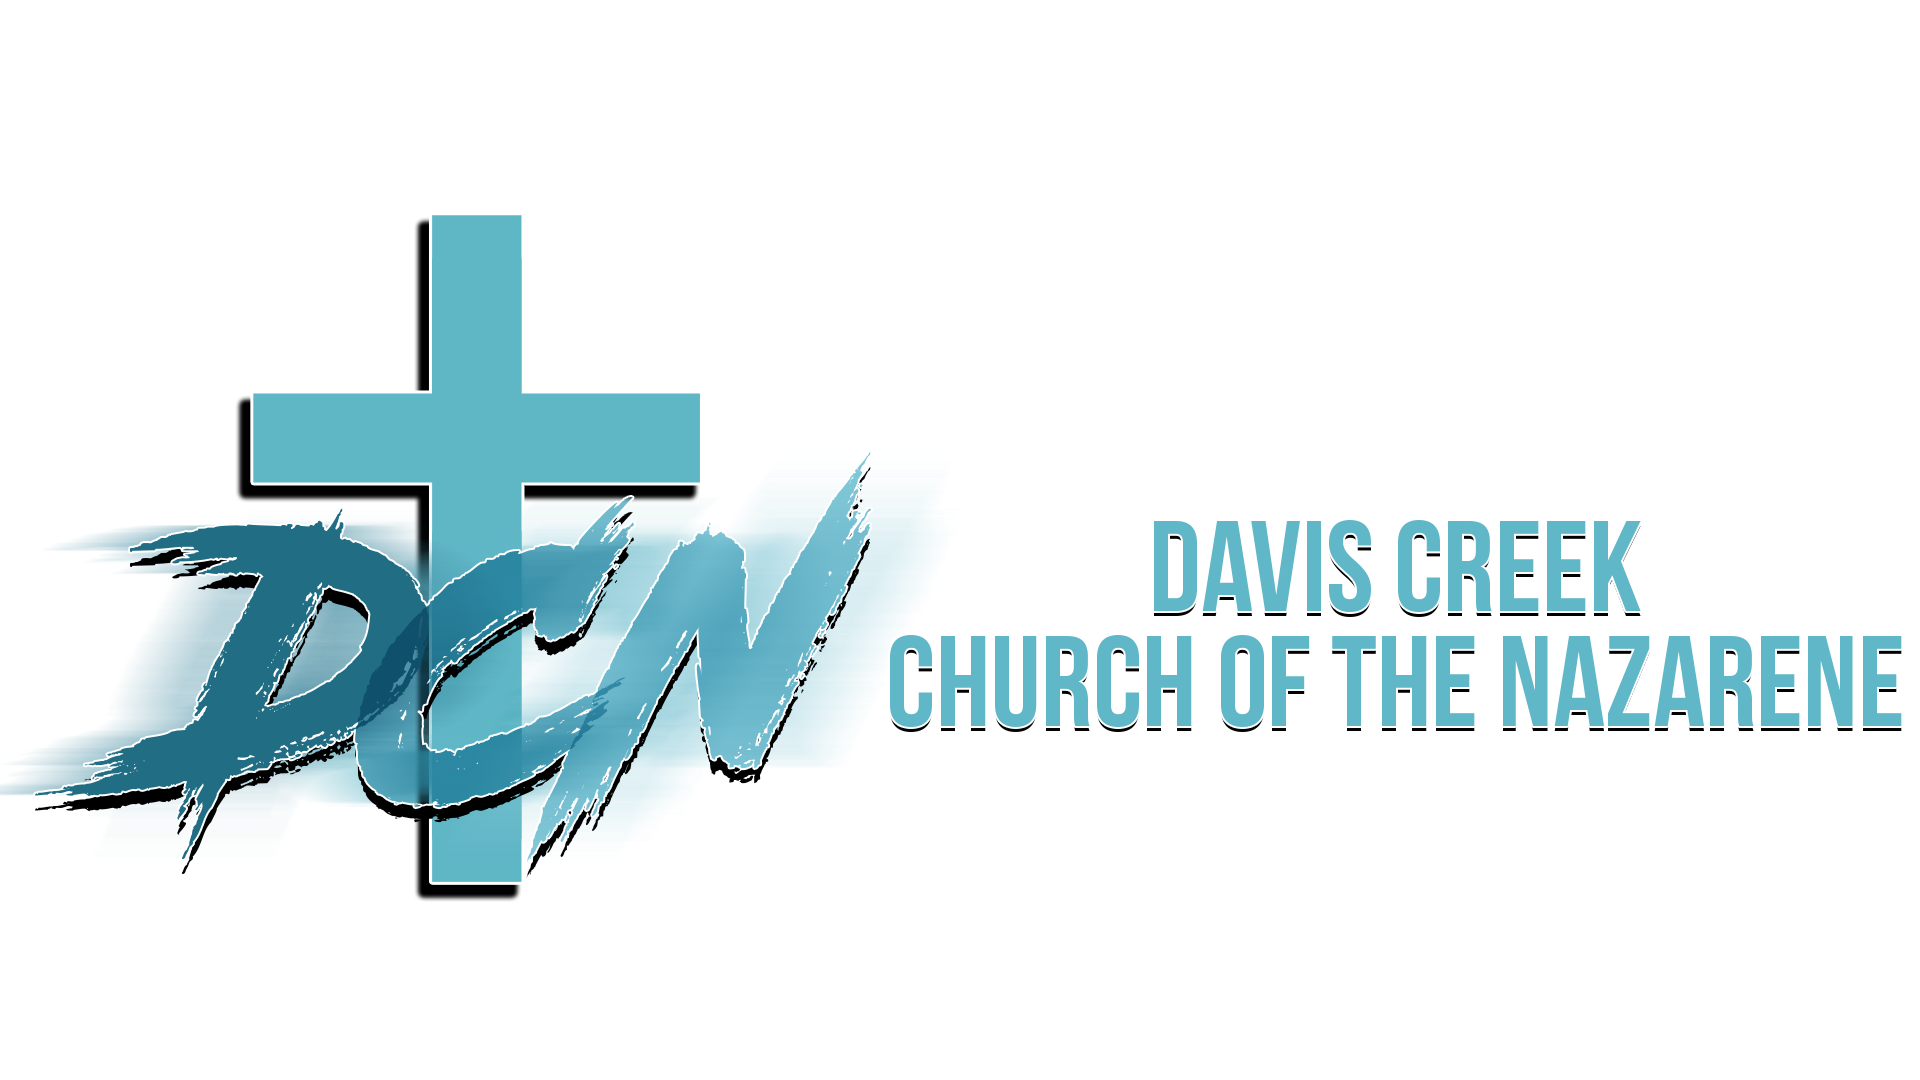 Davis Creek Church of the Nazarene